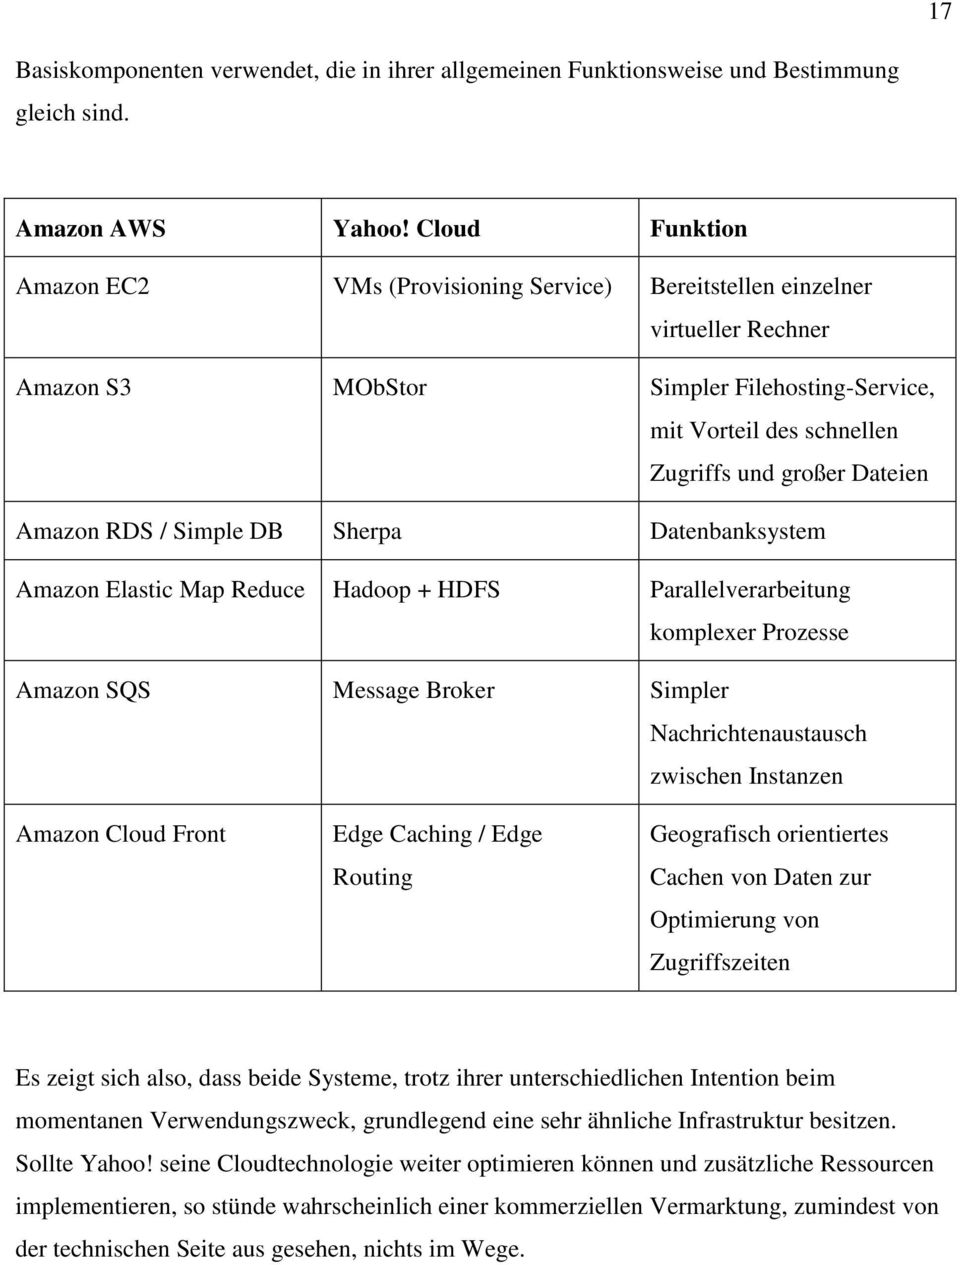 Amazon RDS / Simple DB Sherpa Datenbanksystem Amazon Elastic Map Reduce Hadoop + HDFS Parallelverarbeitung komplexer Prozesse Amazon SQS Message Broker Simpler Nachrichtenaustausch zwischen Instanzen